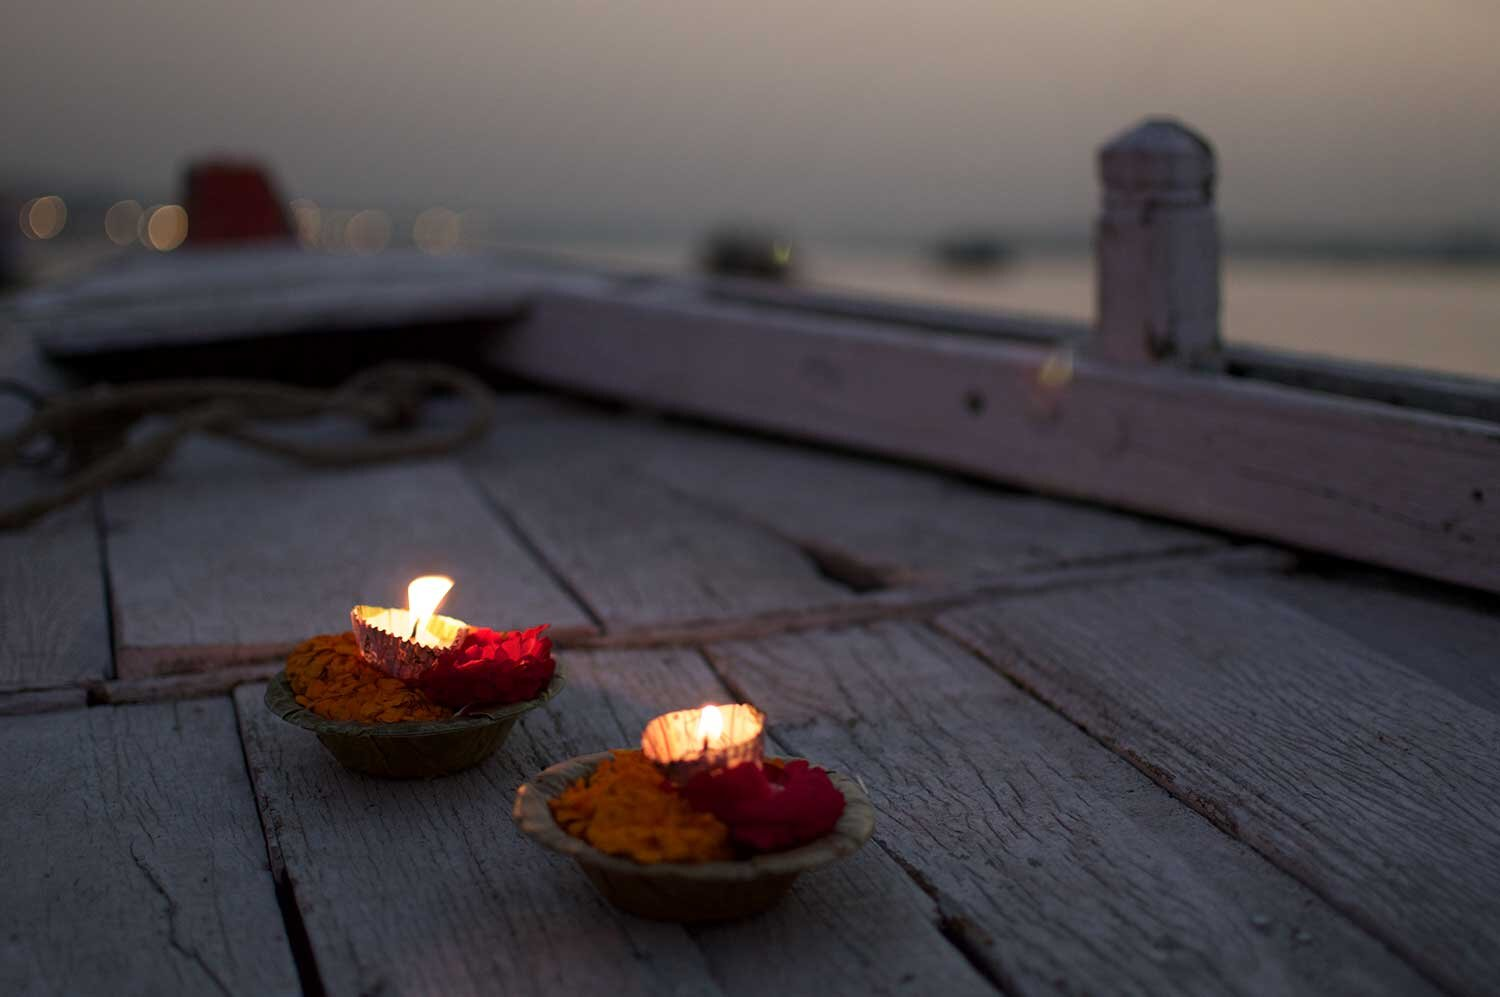 w-inglis-candle-offerings-ganges-river-boat.jpg